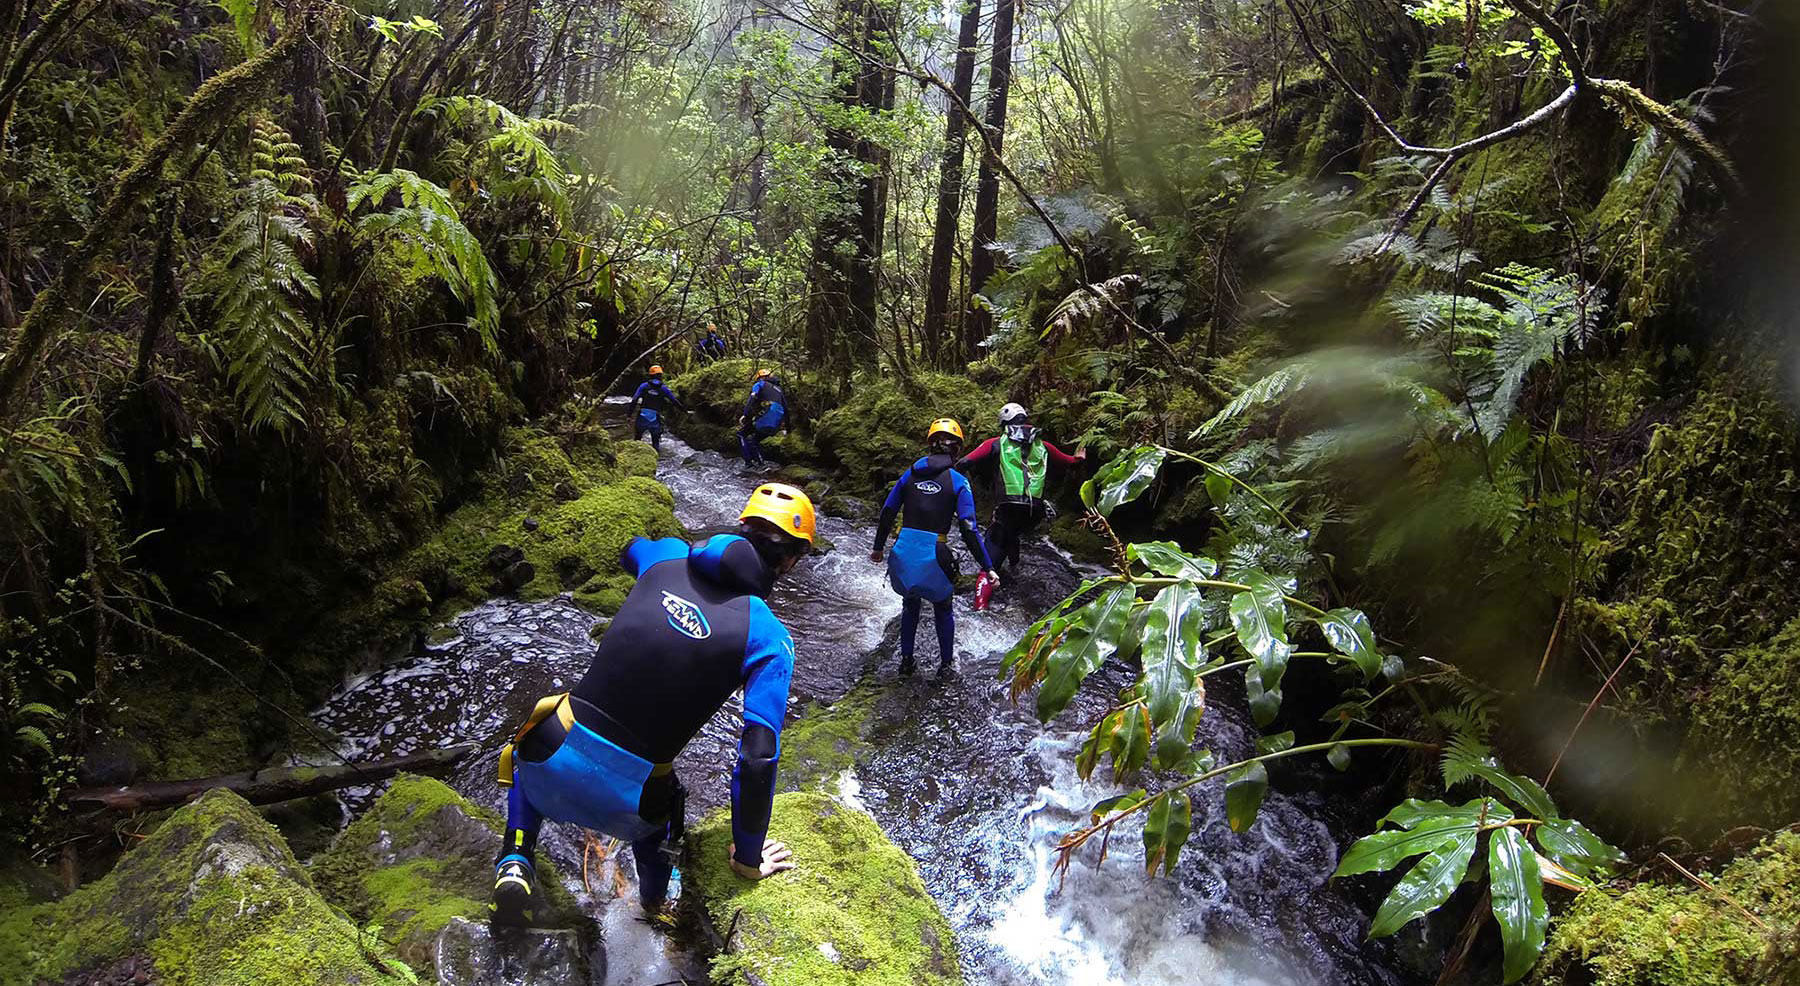 People doing canyoning in the water line. Canyoning is a leisure activity